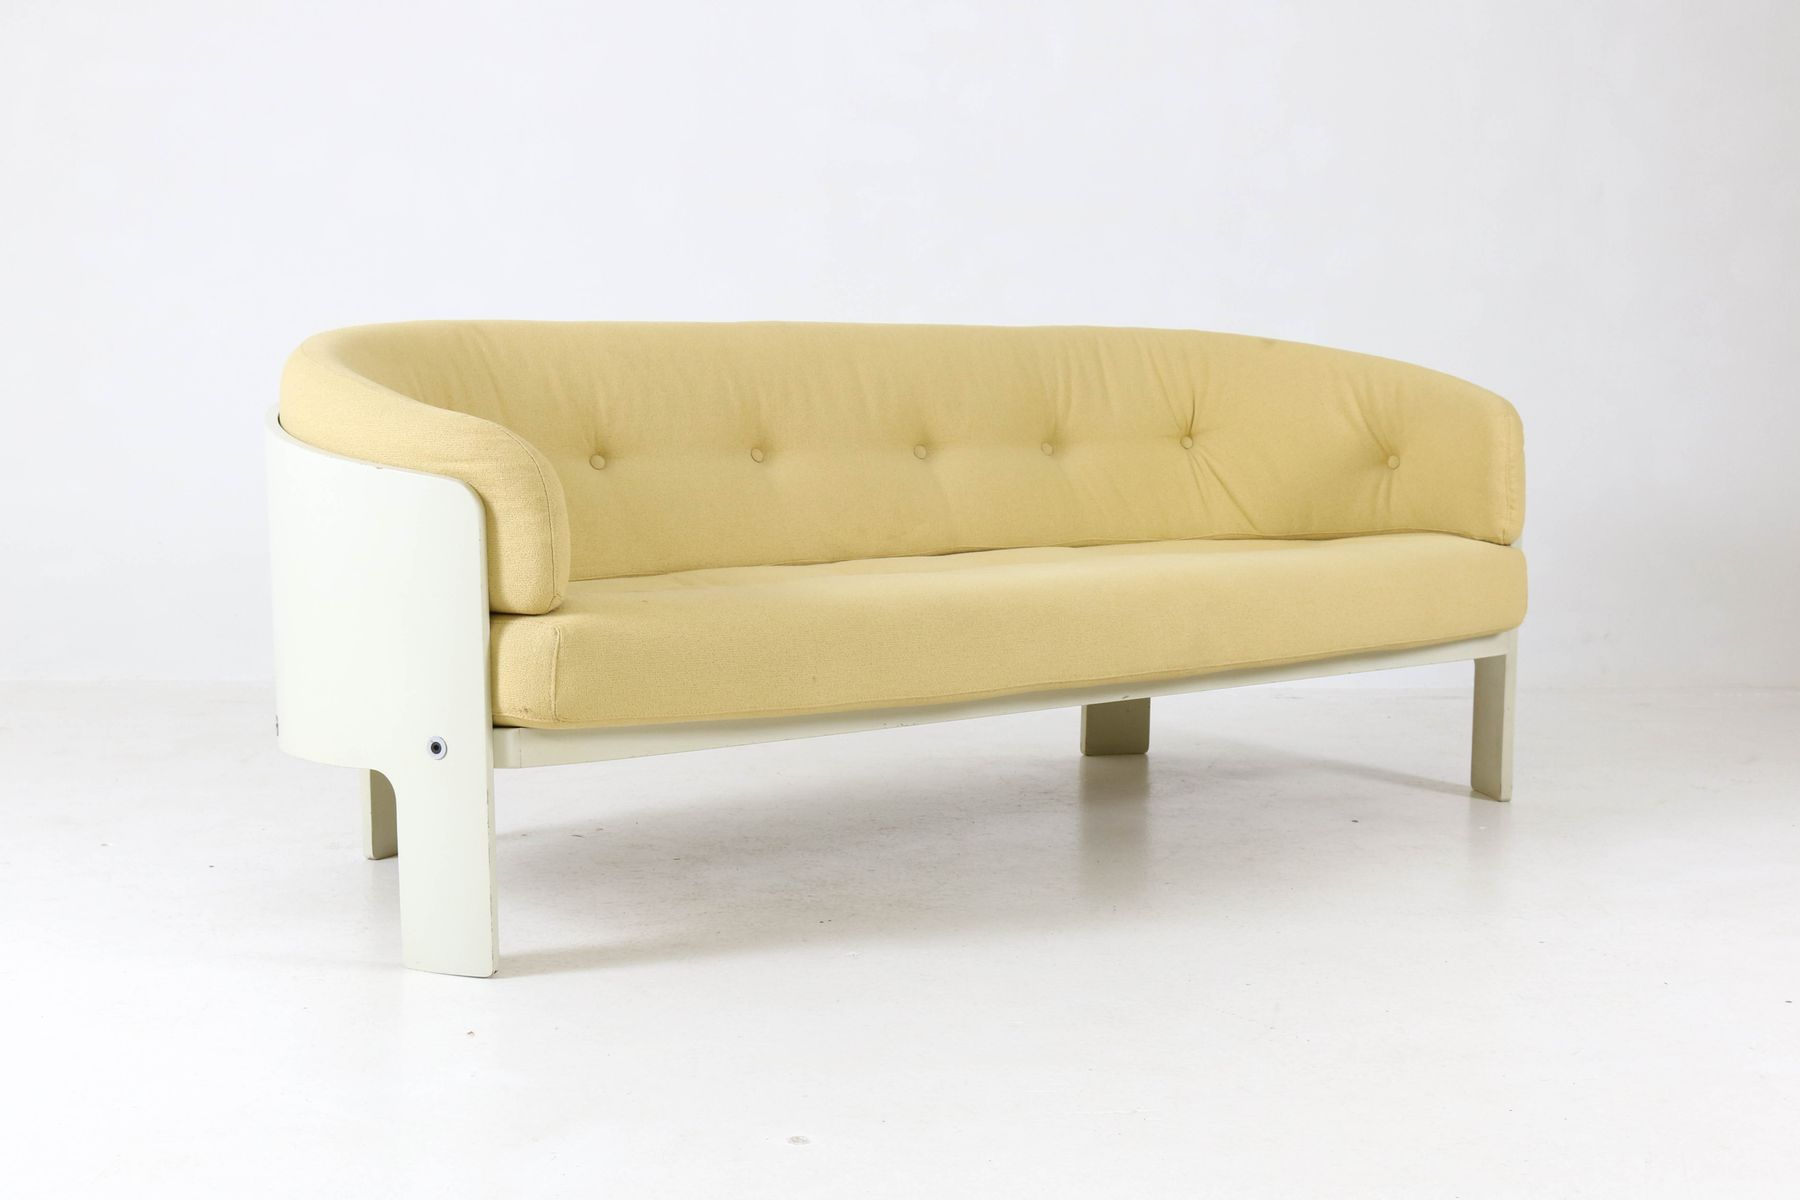 bz49 sofa by hans ell for 39 t spectrum 1970s for sale at pamono. Black Bedroom Furniture Sets. Home Design Ideas